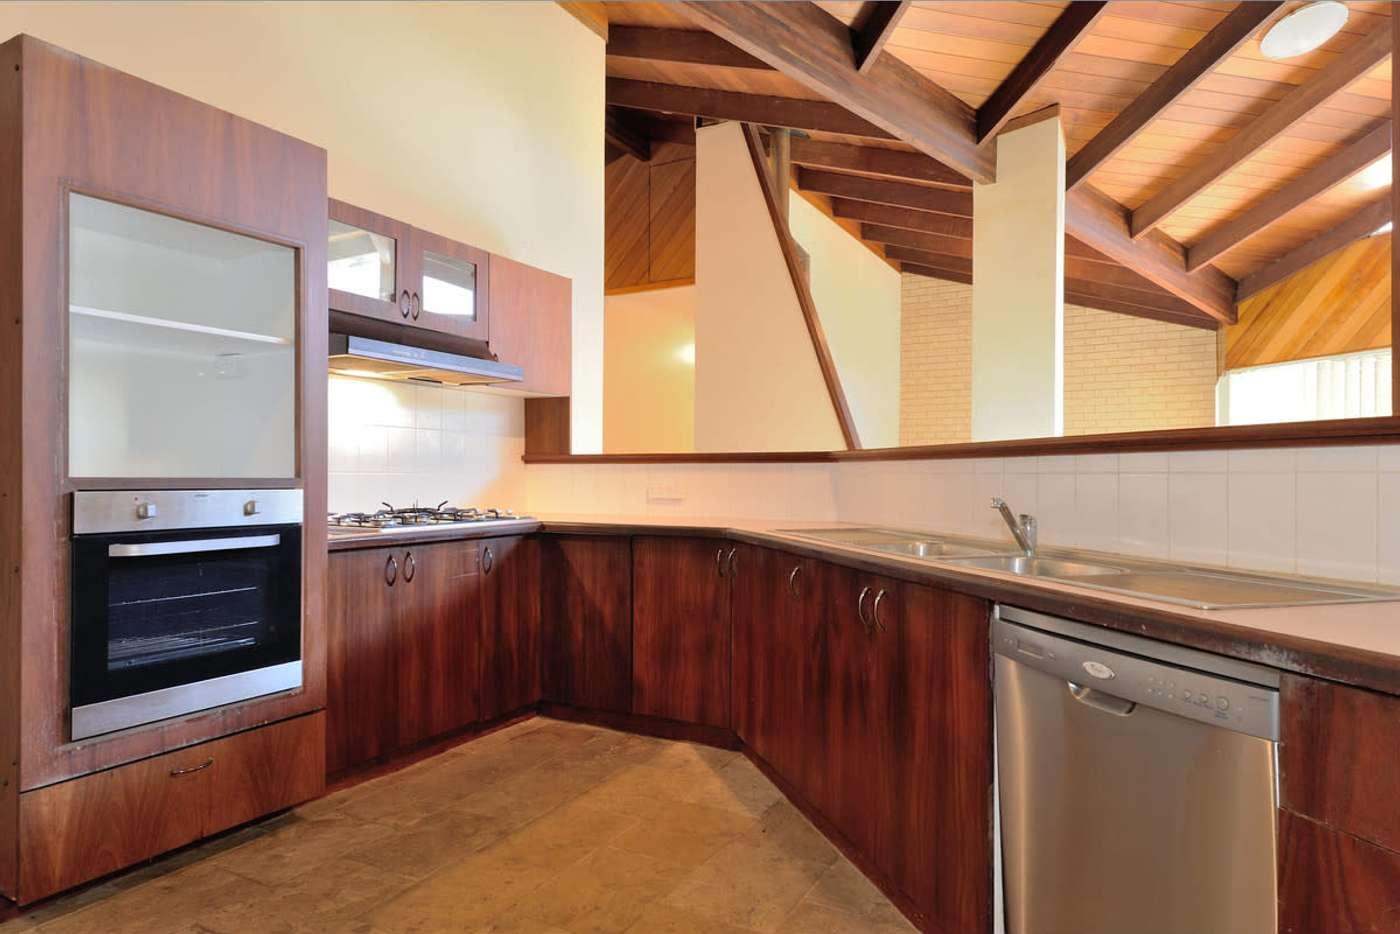 Seventh view of Homely house listing, 141 Caspian Way, Brigadoon WA 6069